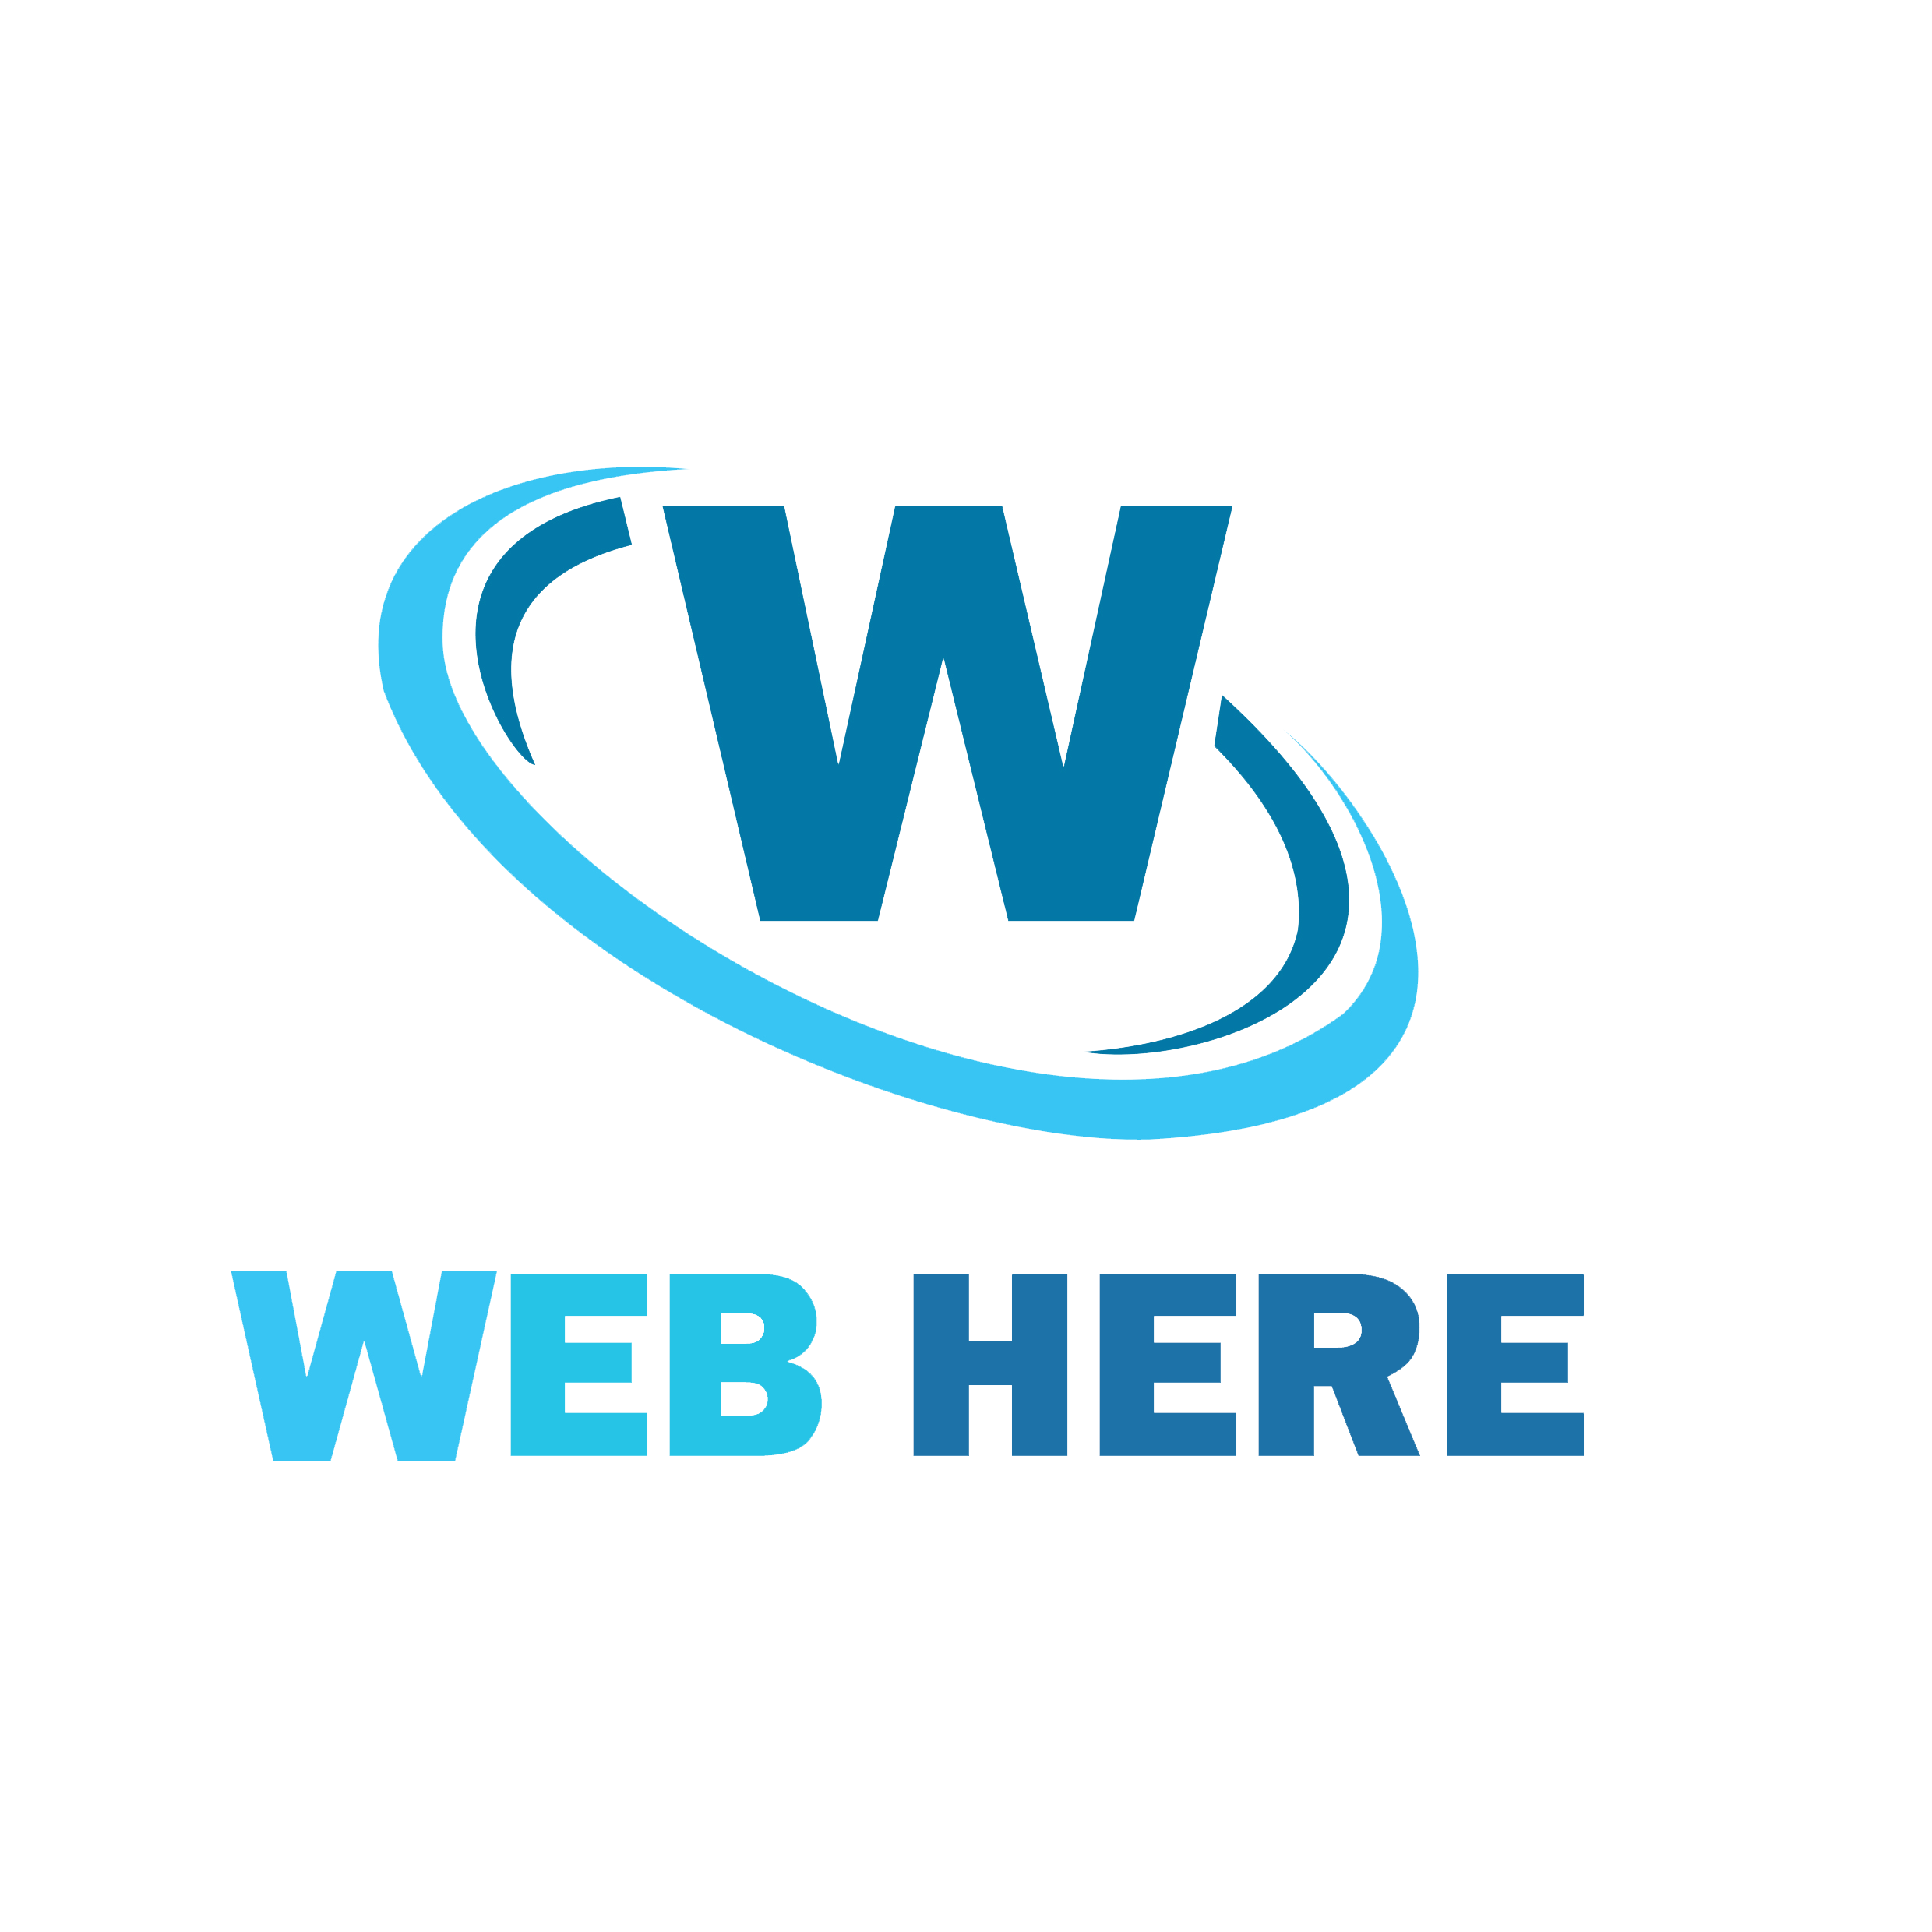 Webhere.vn